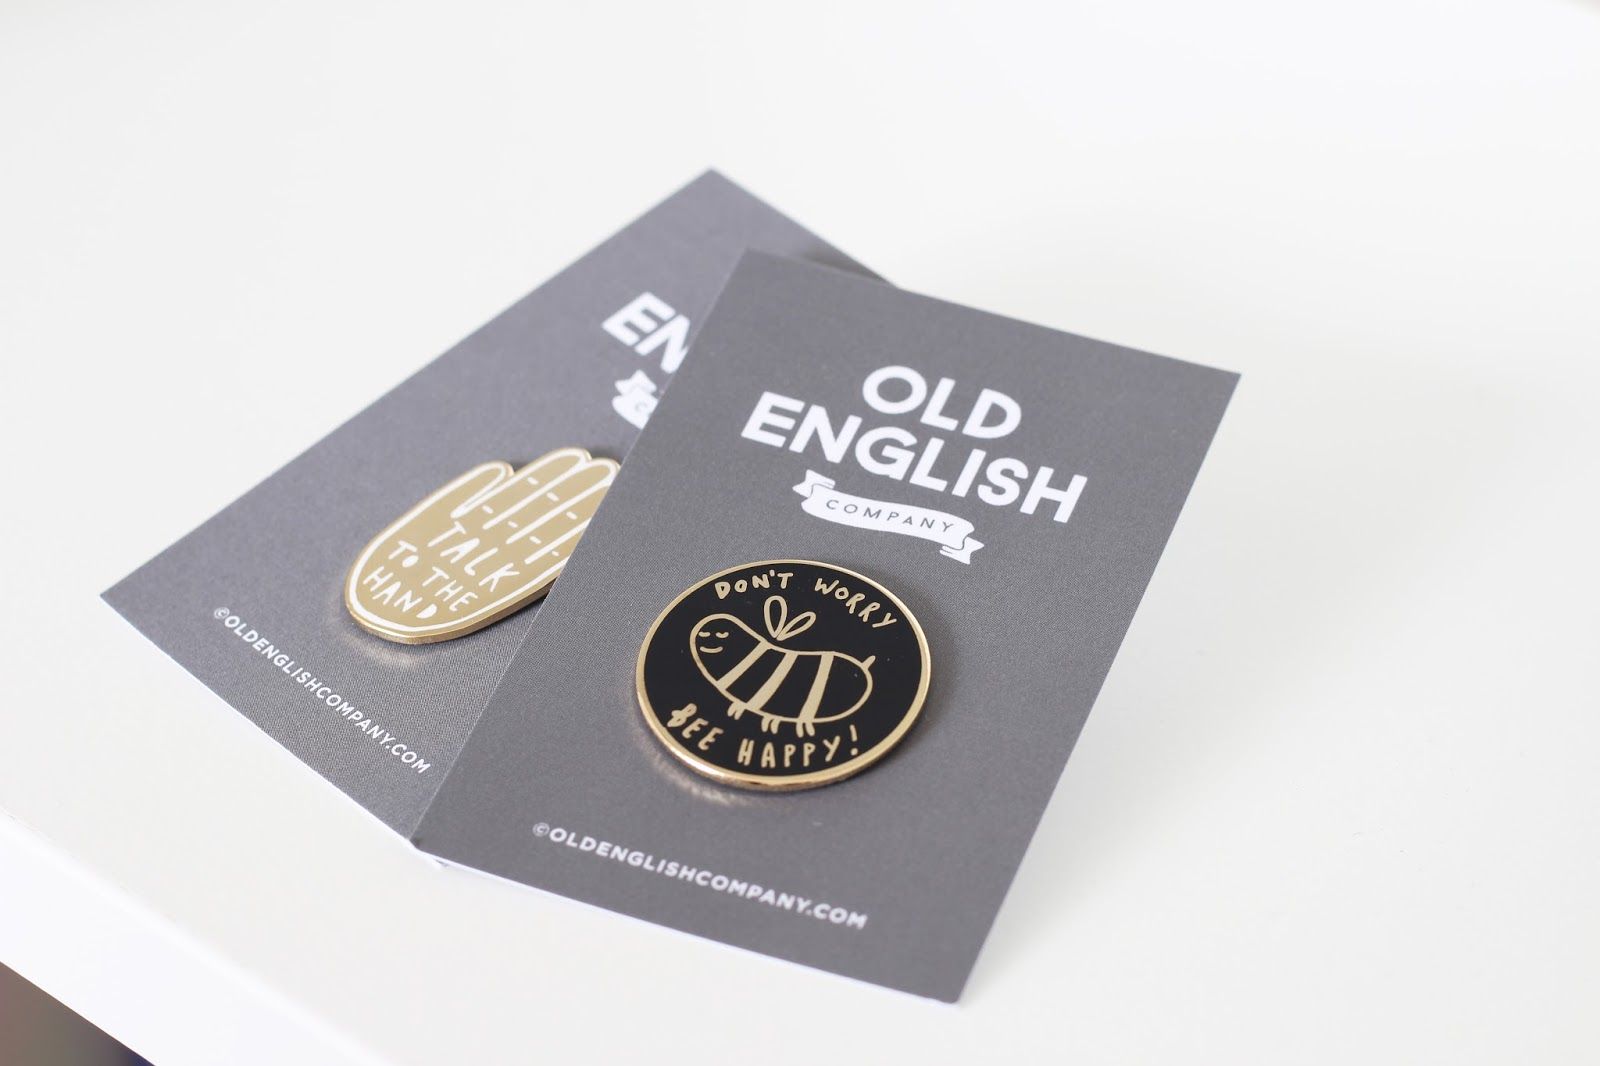 It's All About The Little Things In Life Old English Co stationery homeware